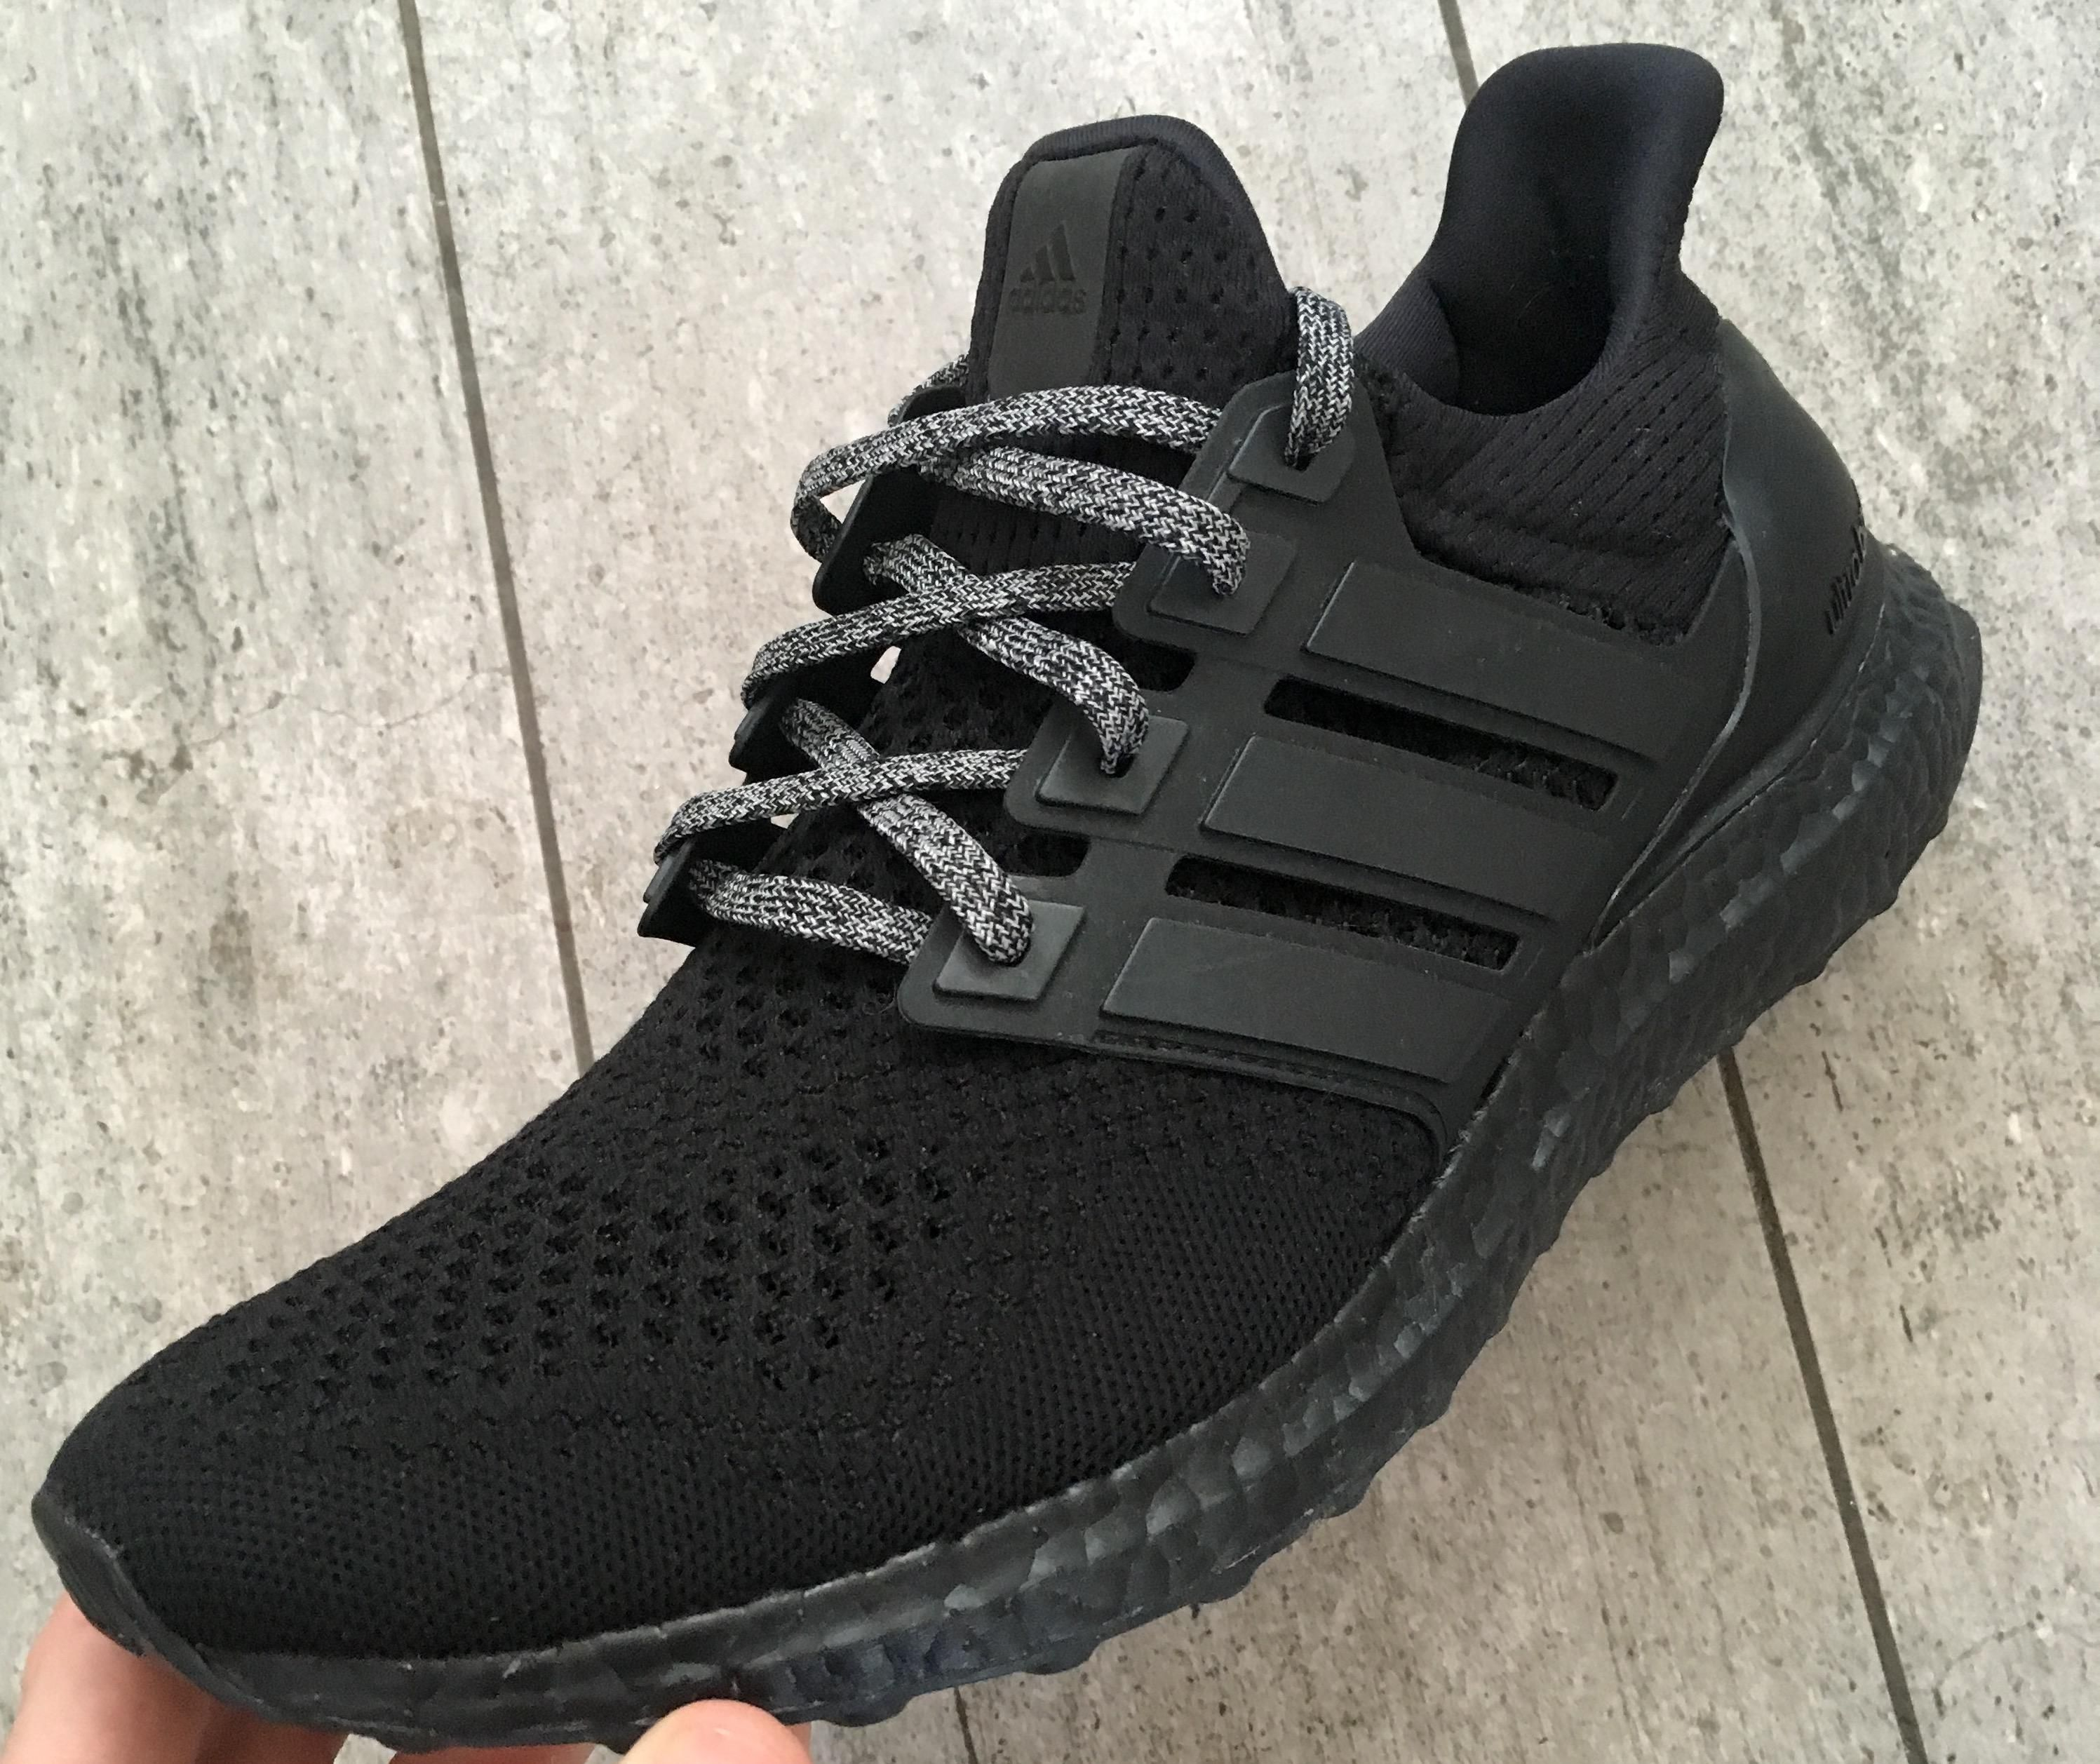 adidas ultra boost 3.0 OREO BLACK WHITE 10.5 DS IN HAND